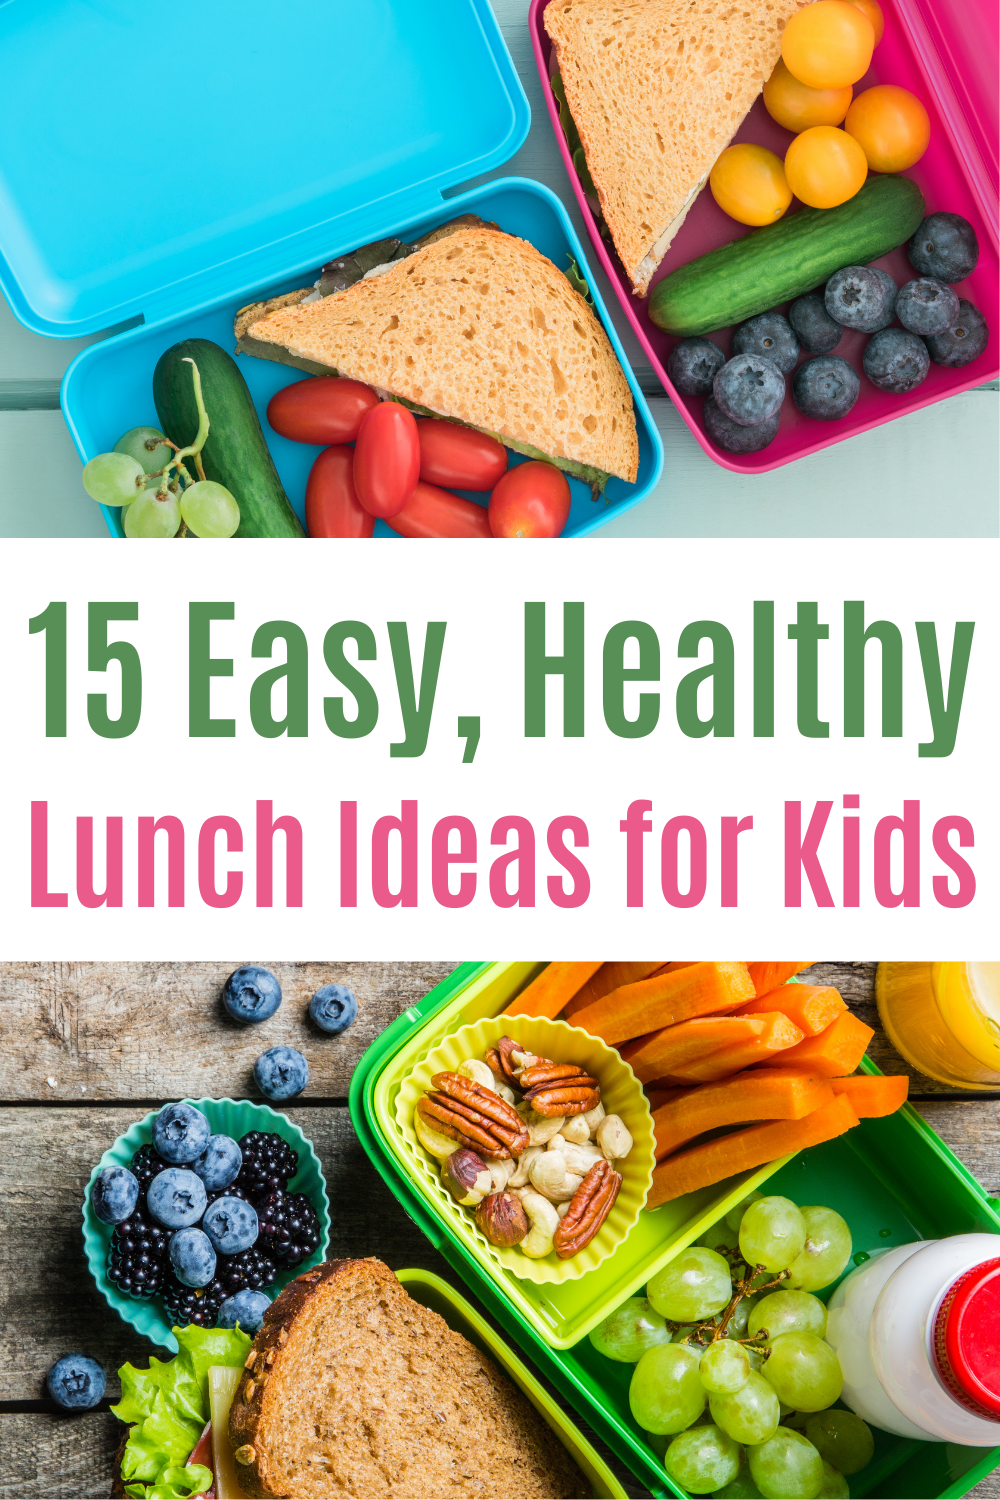 15 Easy, Healthy Lunch Ideas for Kids PIN